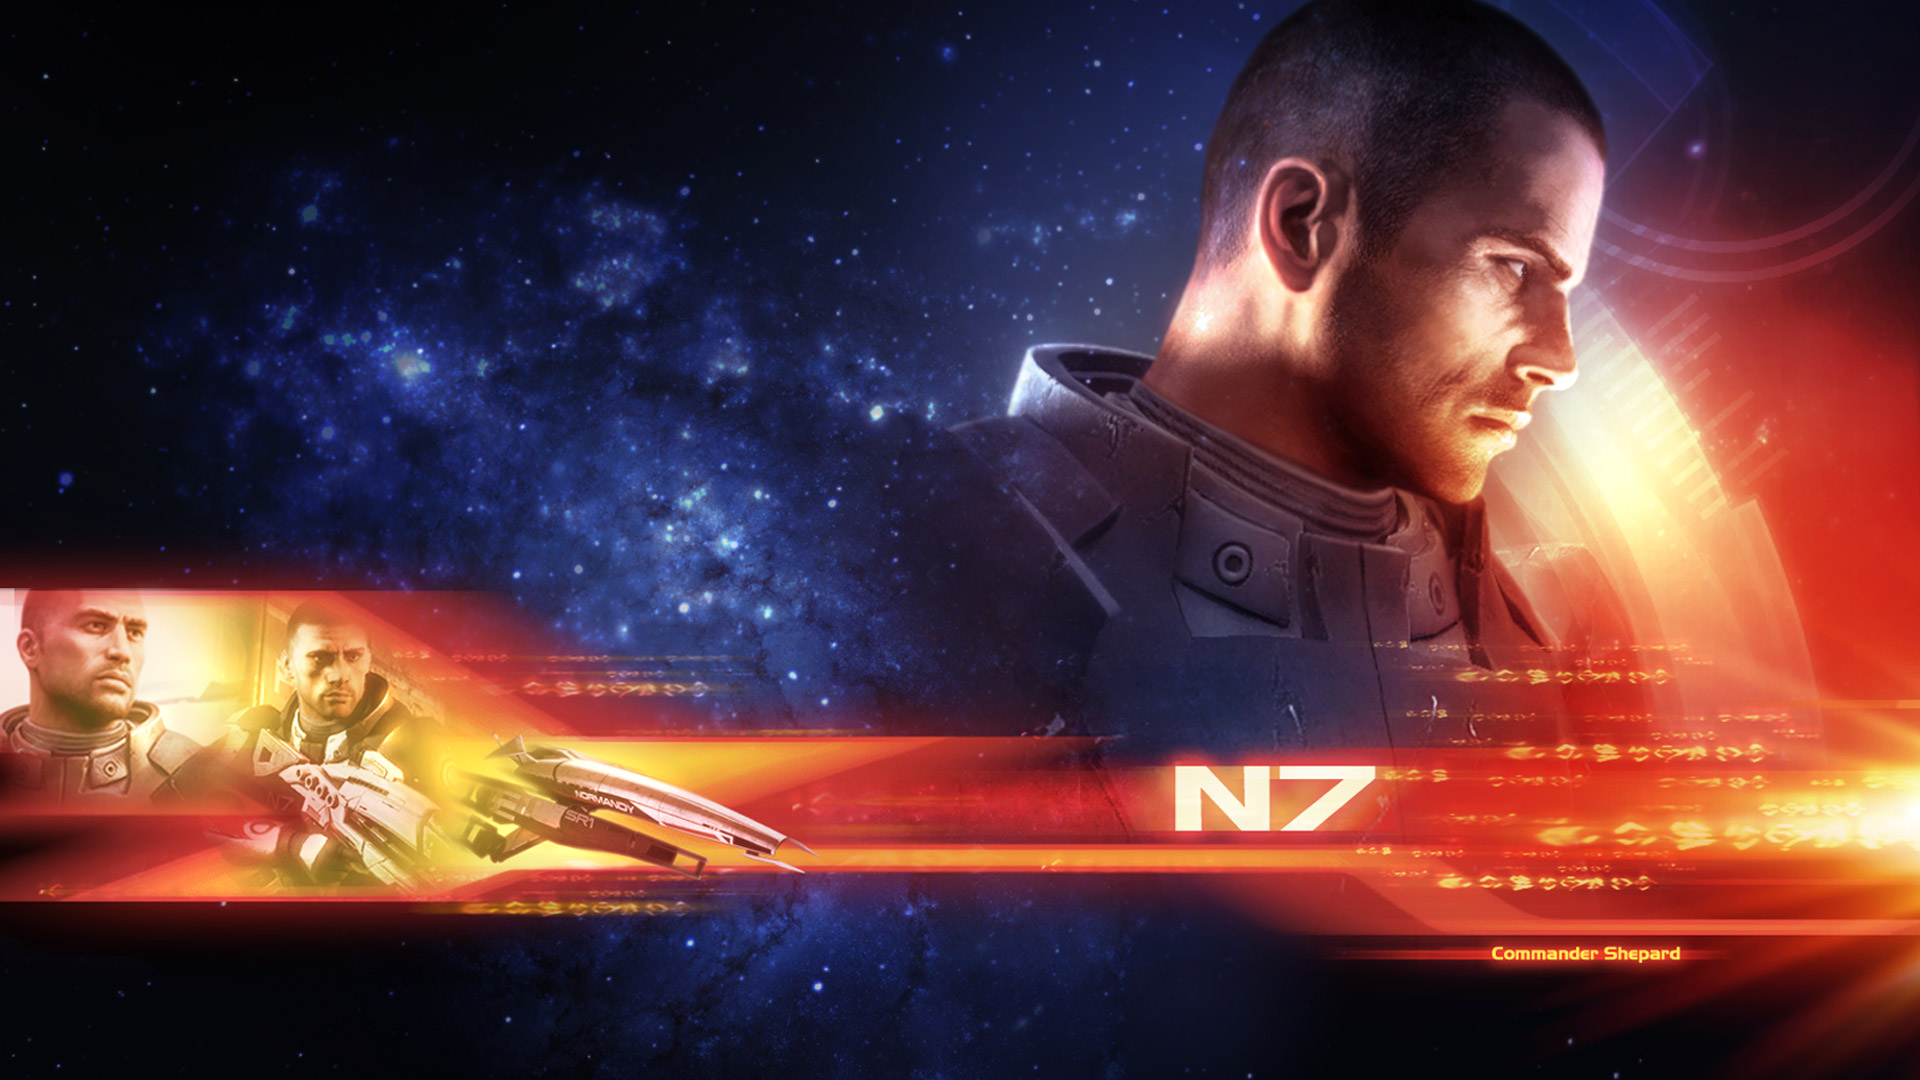 Free Mass Effect Wallpaper in 1920x1080